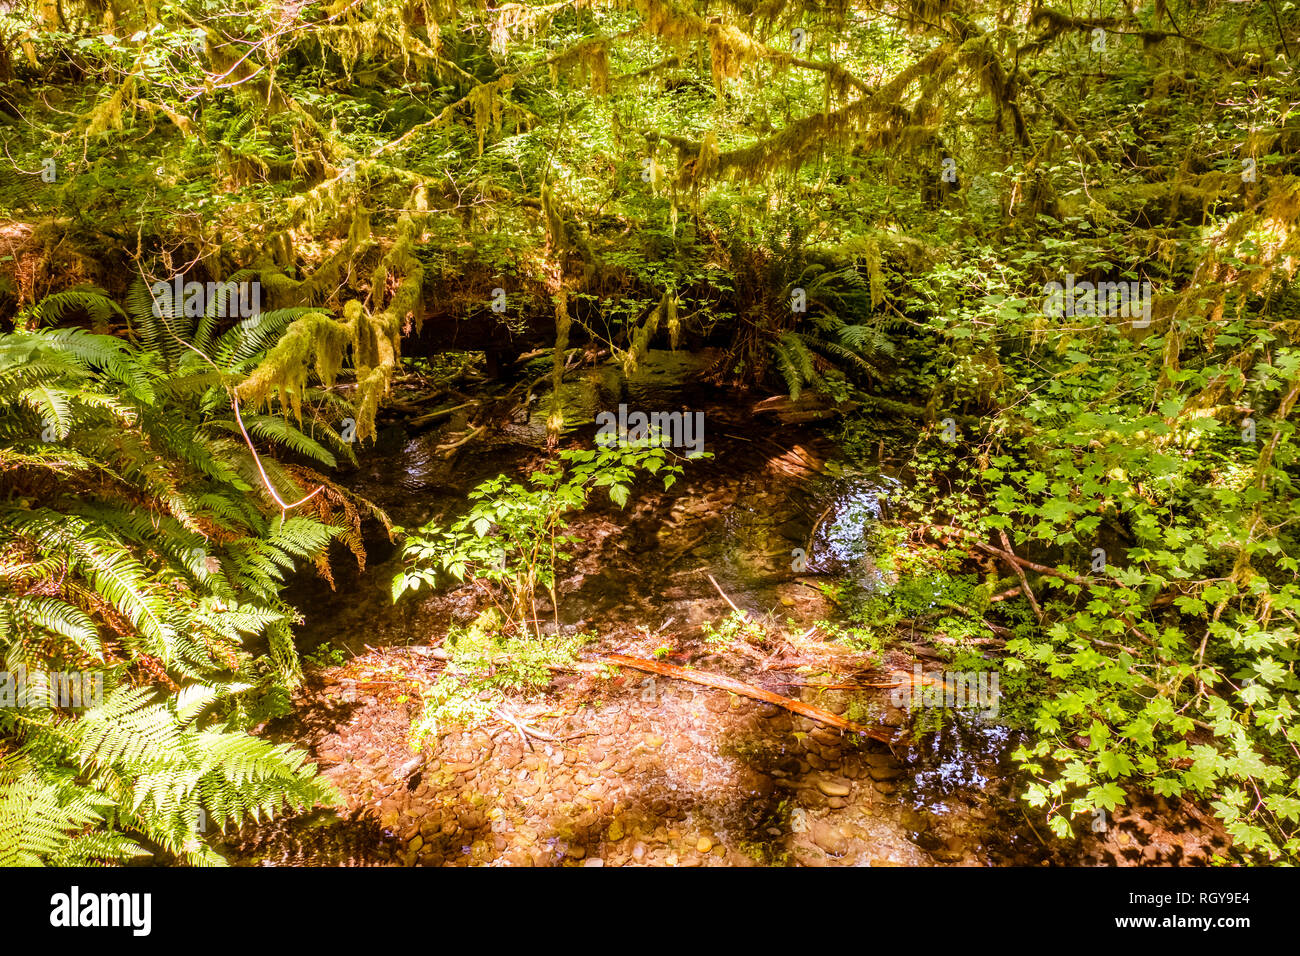 Hoh forest in the olympic peninsula in washington state USA - Stock Image